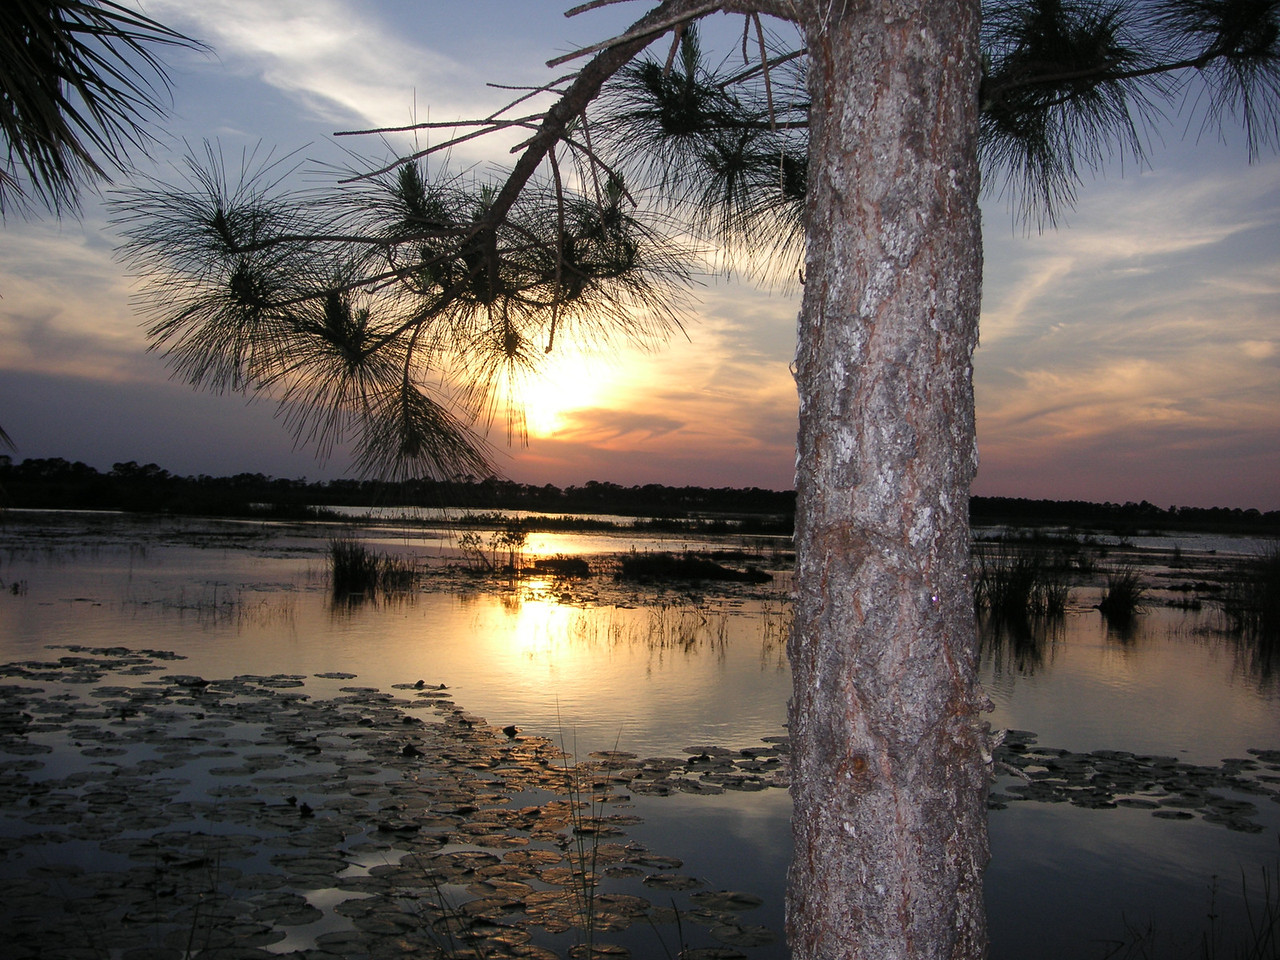 SECOND PLACE: GOOD NATURE<br /> <br /> Sunset at Hawk's Bluff Trail in the Savannas State Park in <br /> Jensen Beach on April 6, 2006 during the Tropical Trekkers annual dessert hike. <br /> PHOTO by Gretchen Dewey